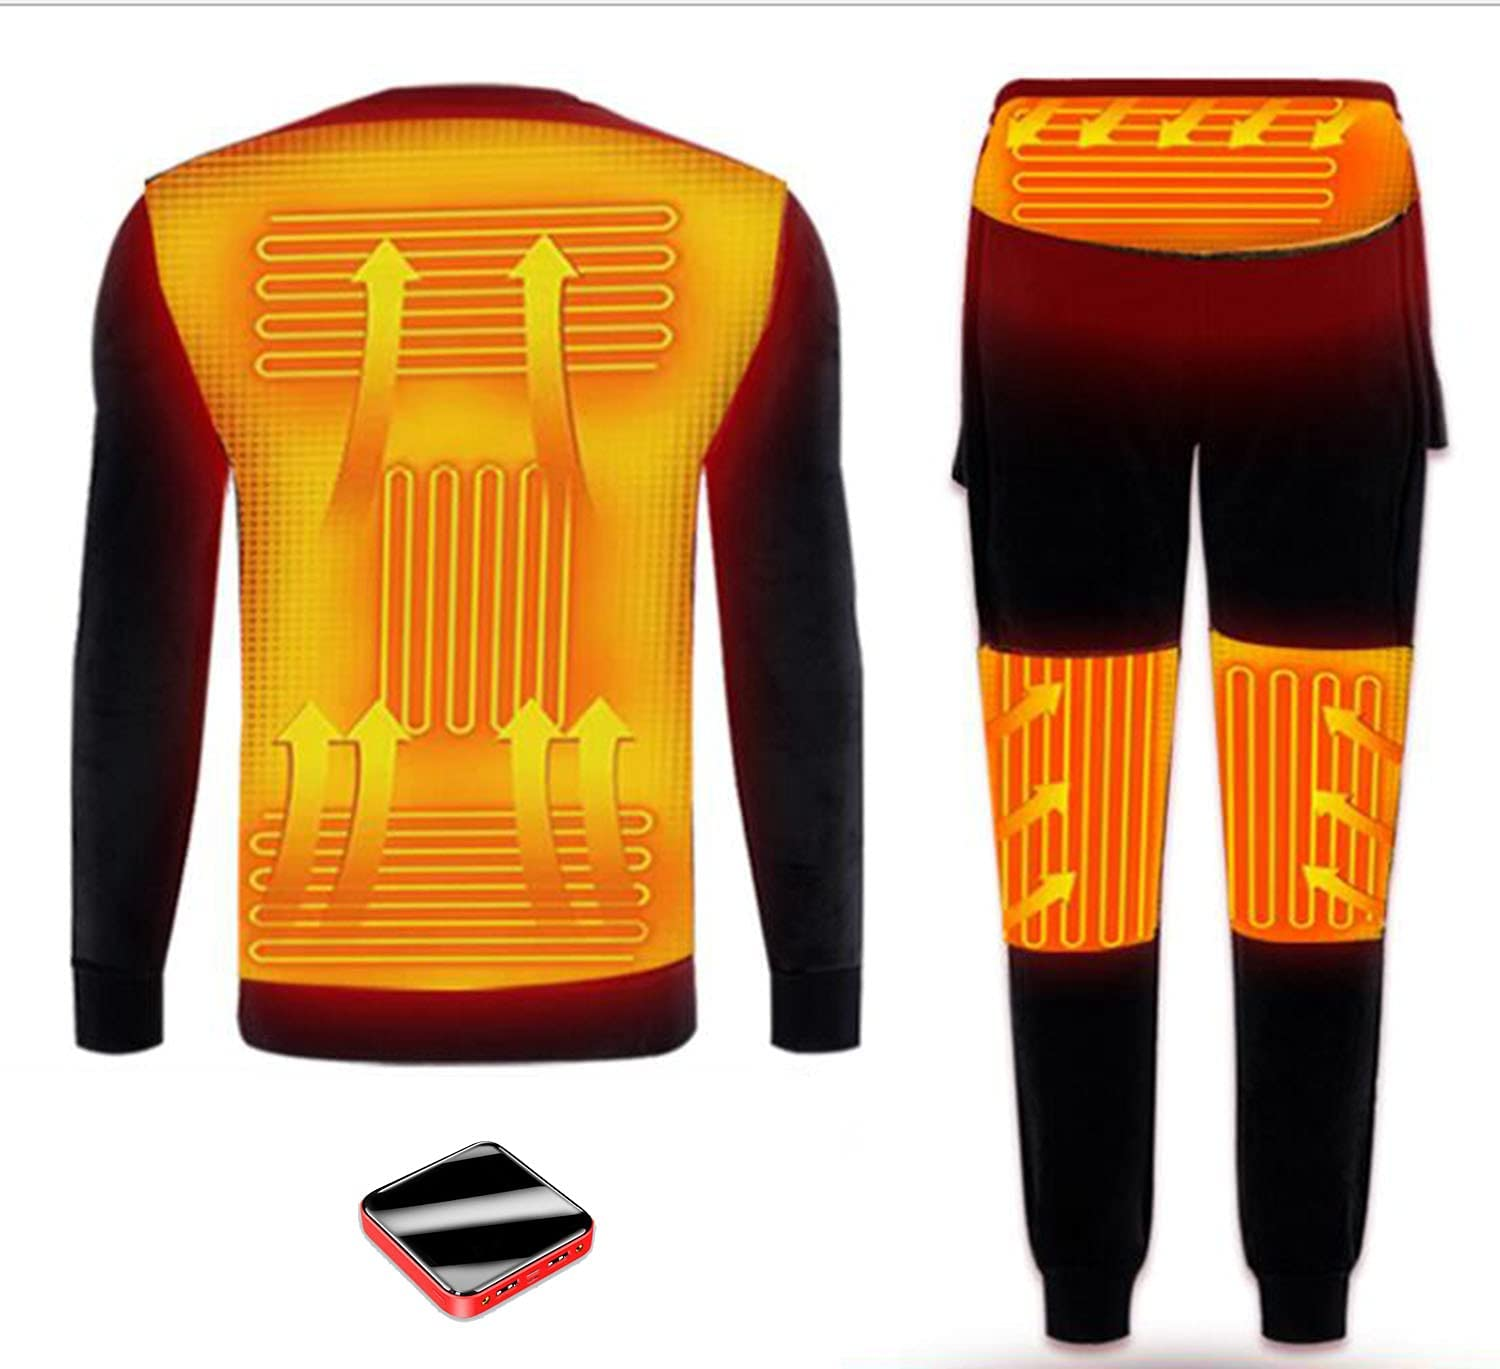 ASEDF Heated Thermal Underwear for Men and Women,Washable USB Electric Heated Thermal Long Sleeve T Shirts or Pants Men- XL